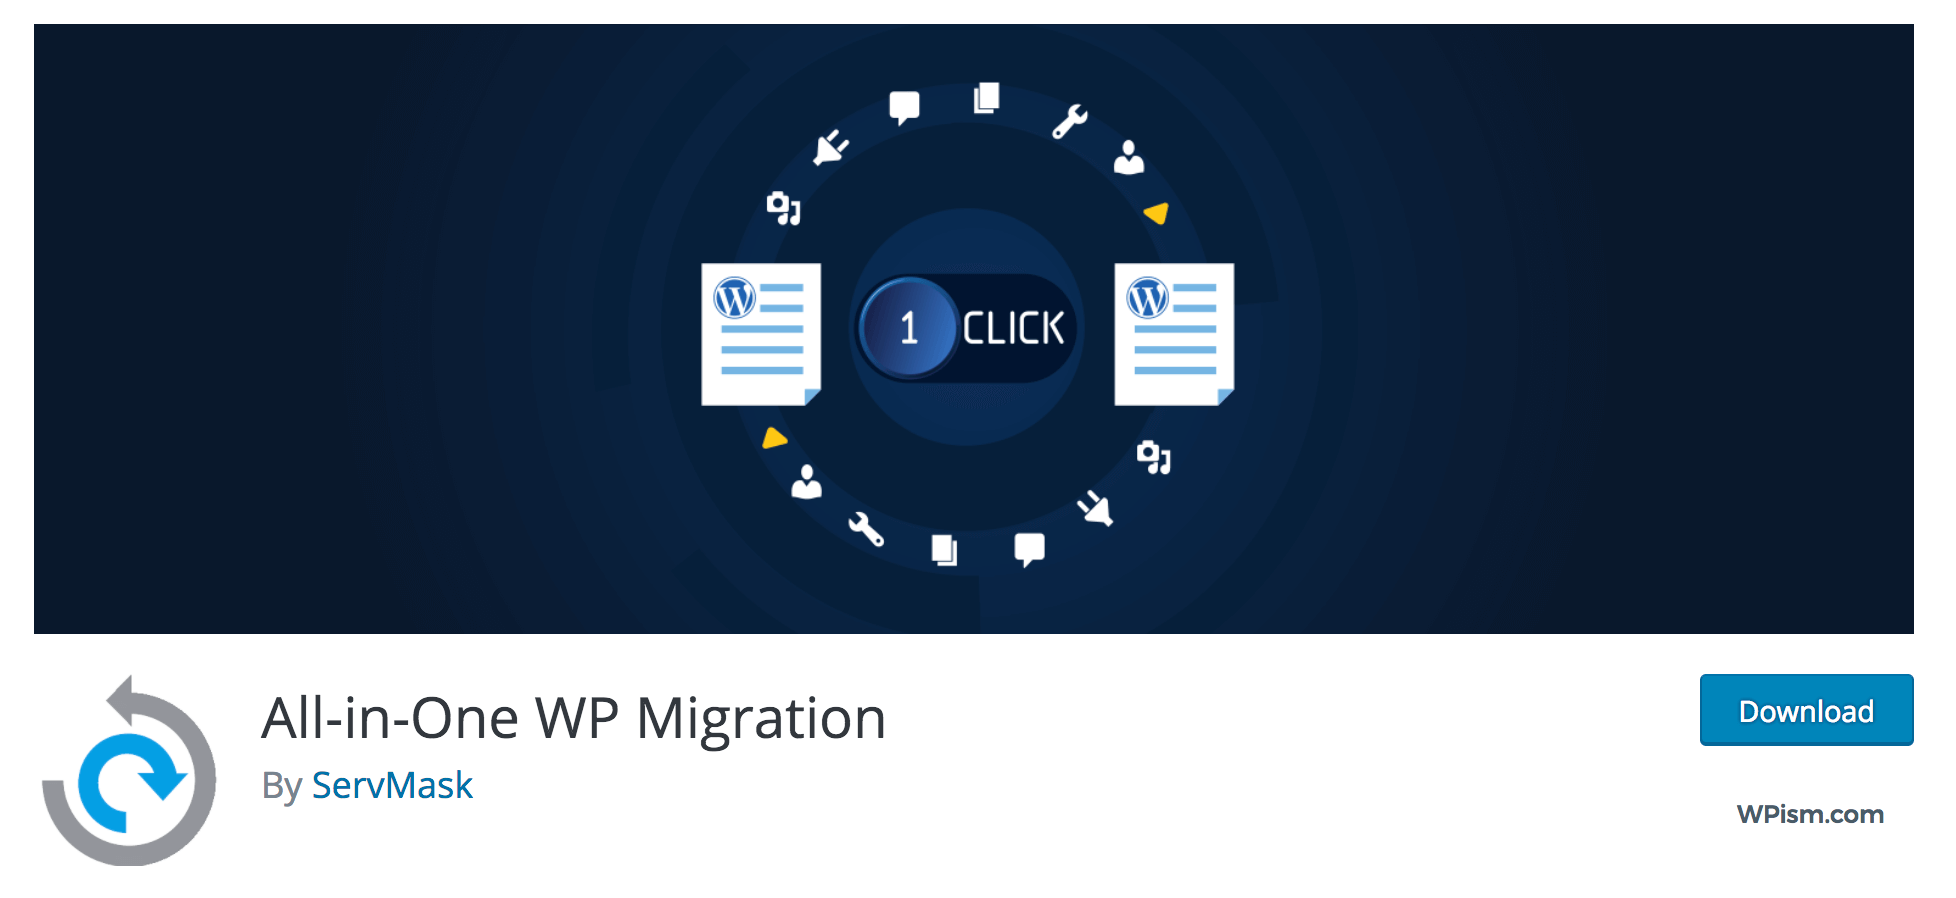 All-in-One WP Migration By ServMask